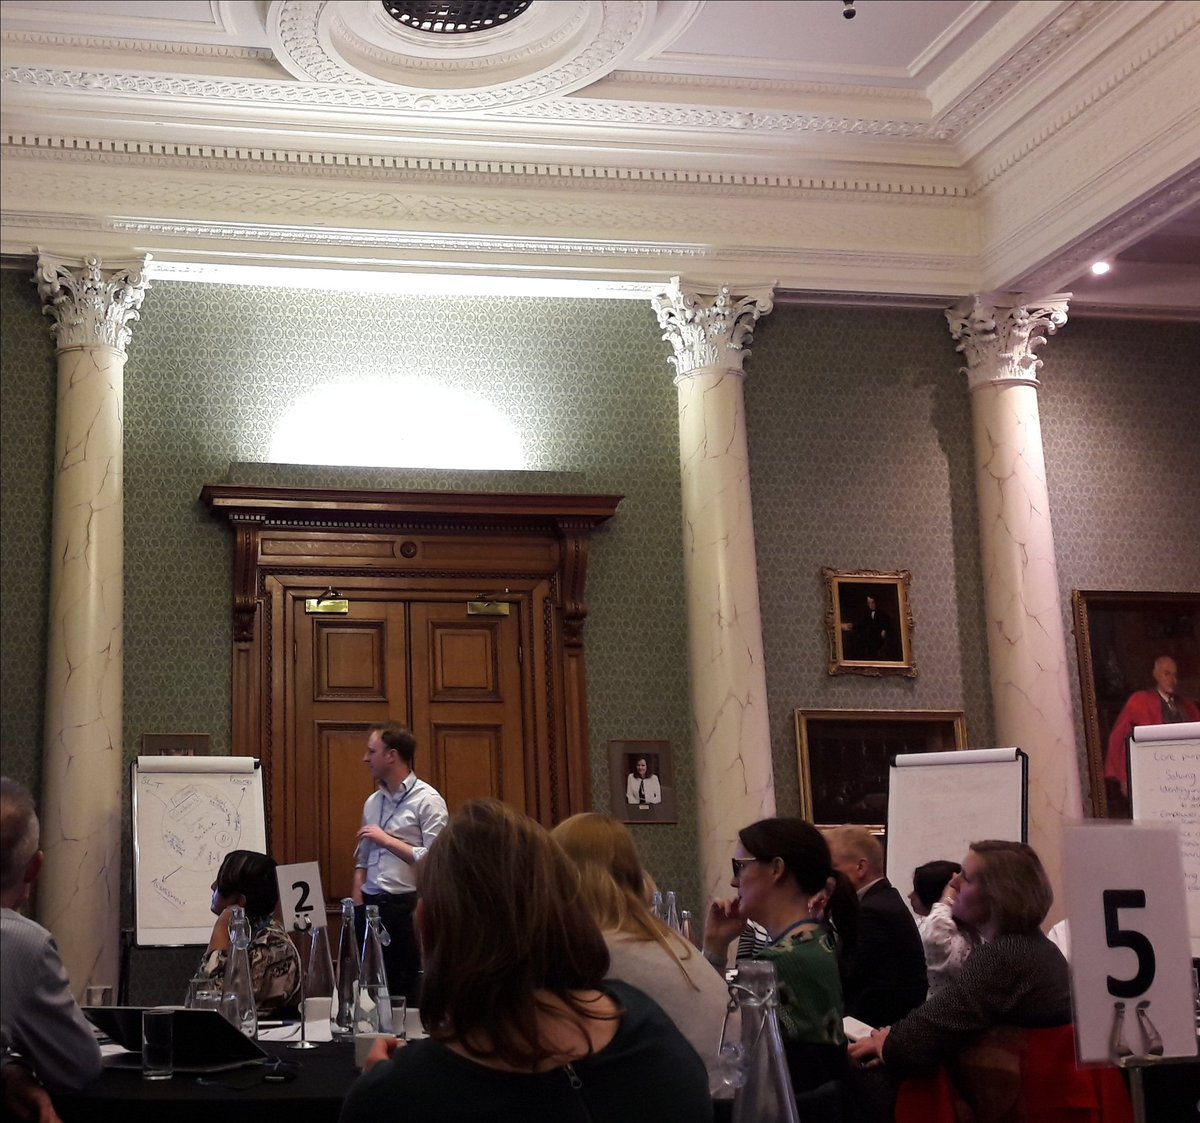 Excited to be part of the STEM Education Symposium right here in Burlington House @RoySocChem #PISAscience2024